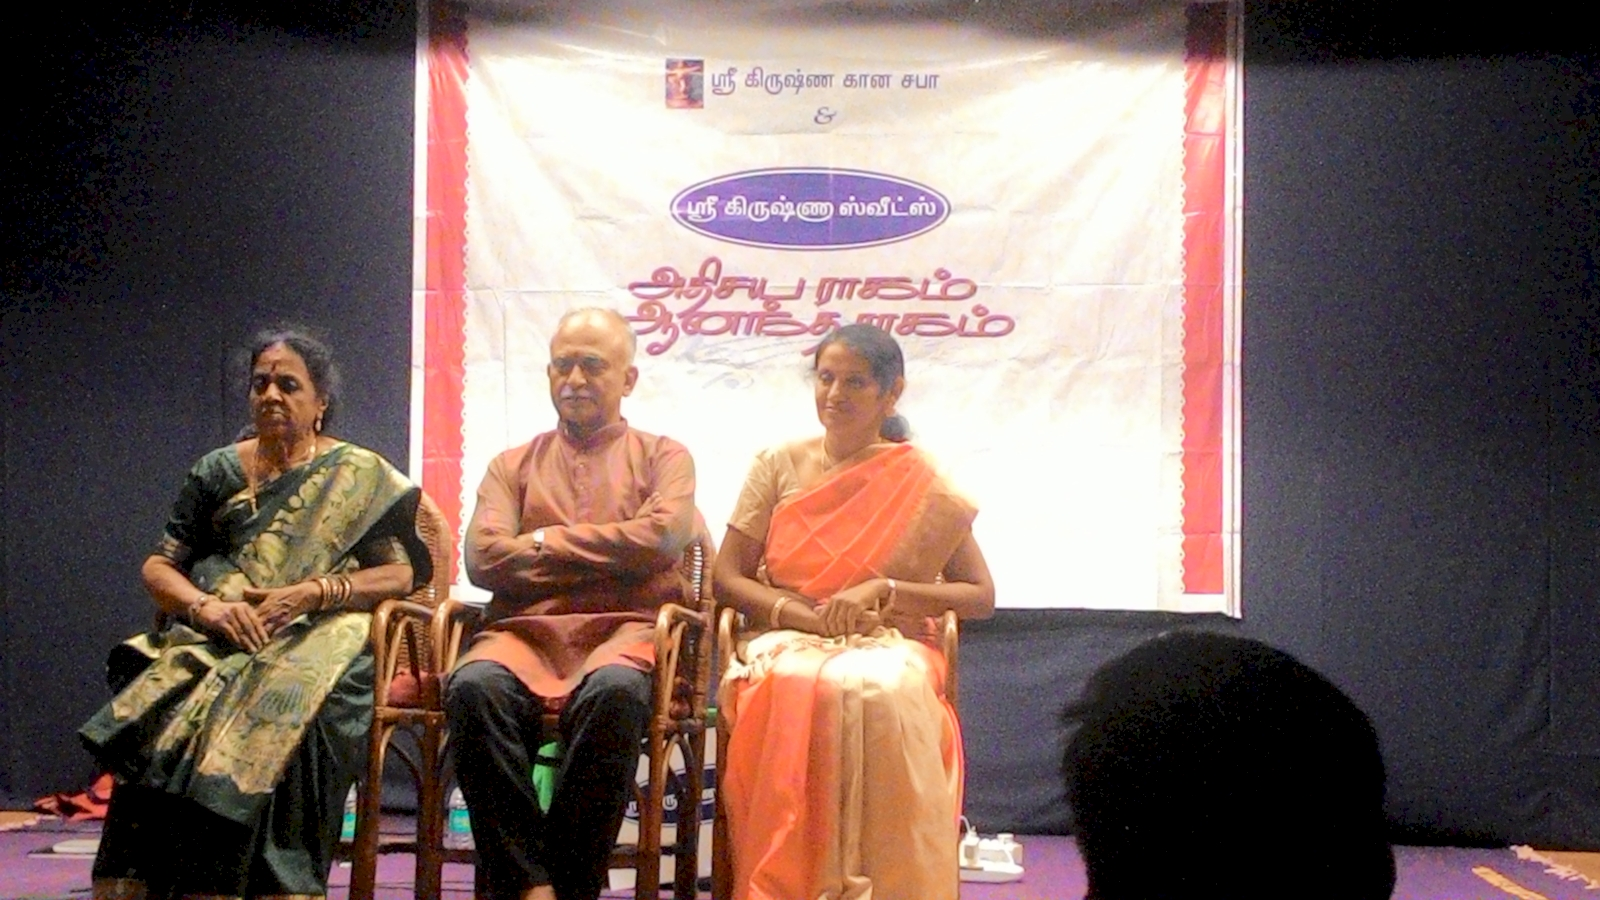 Lekshmy Manoj receives Nallore award for contributions to music teaching